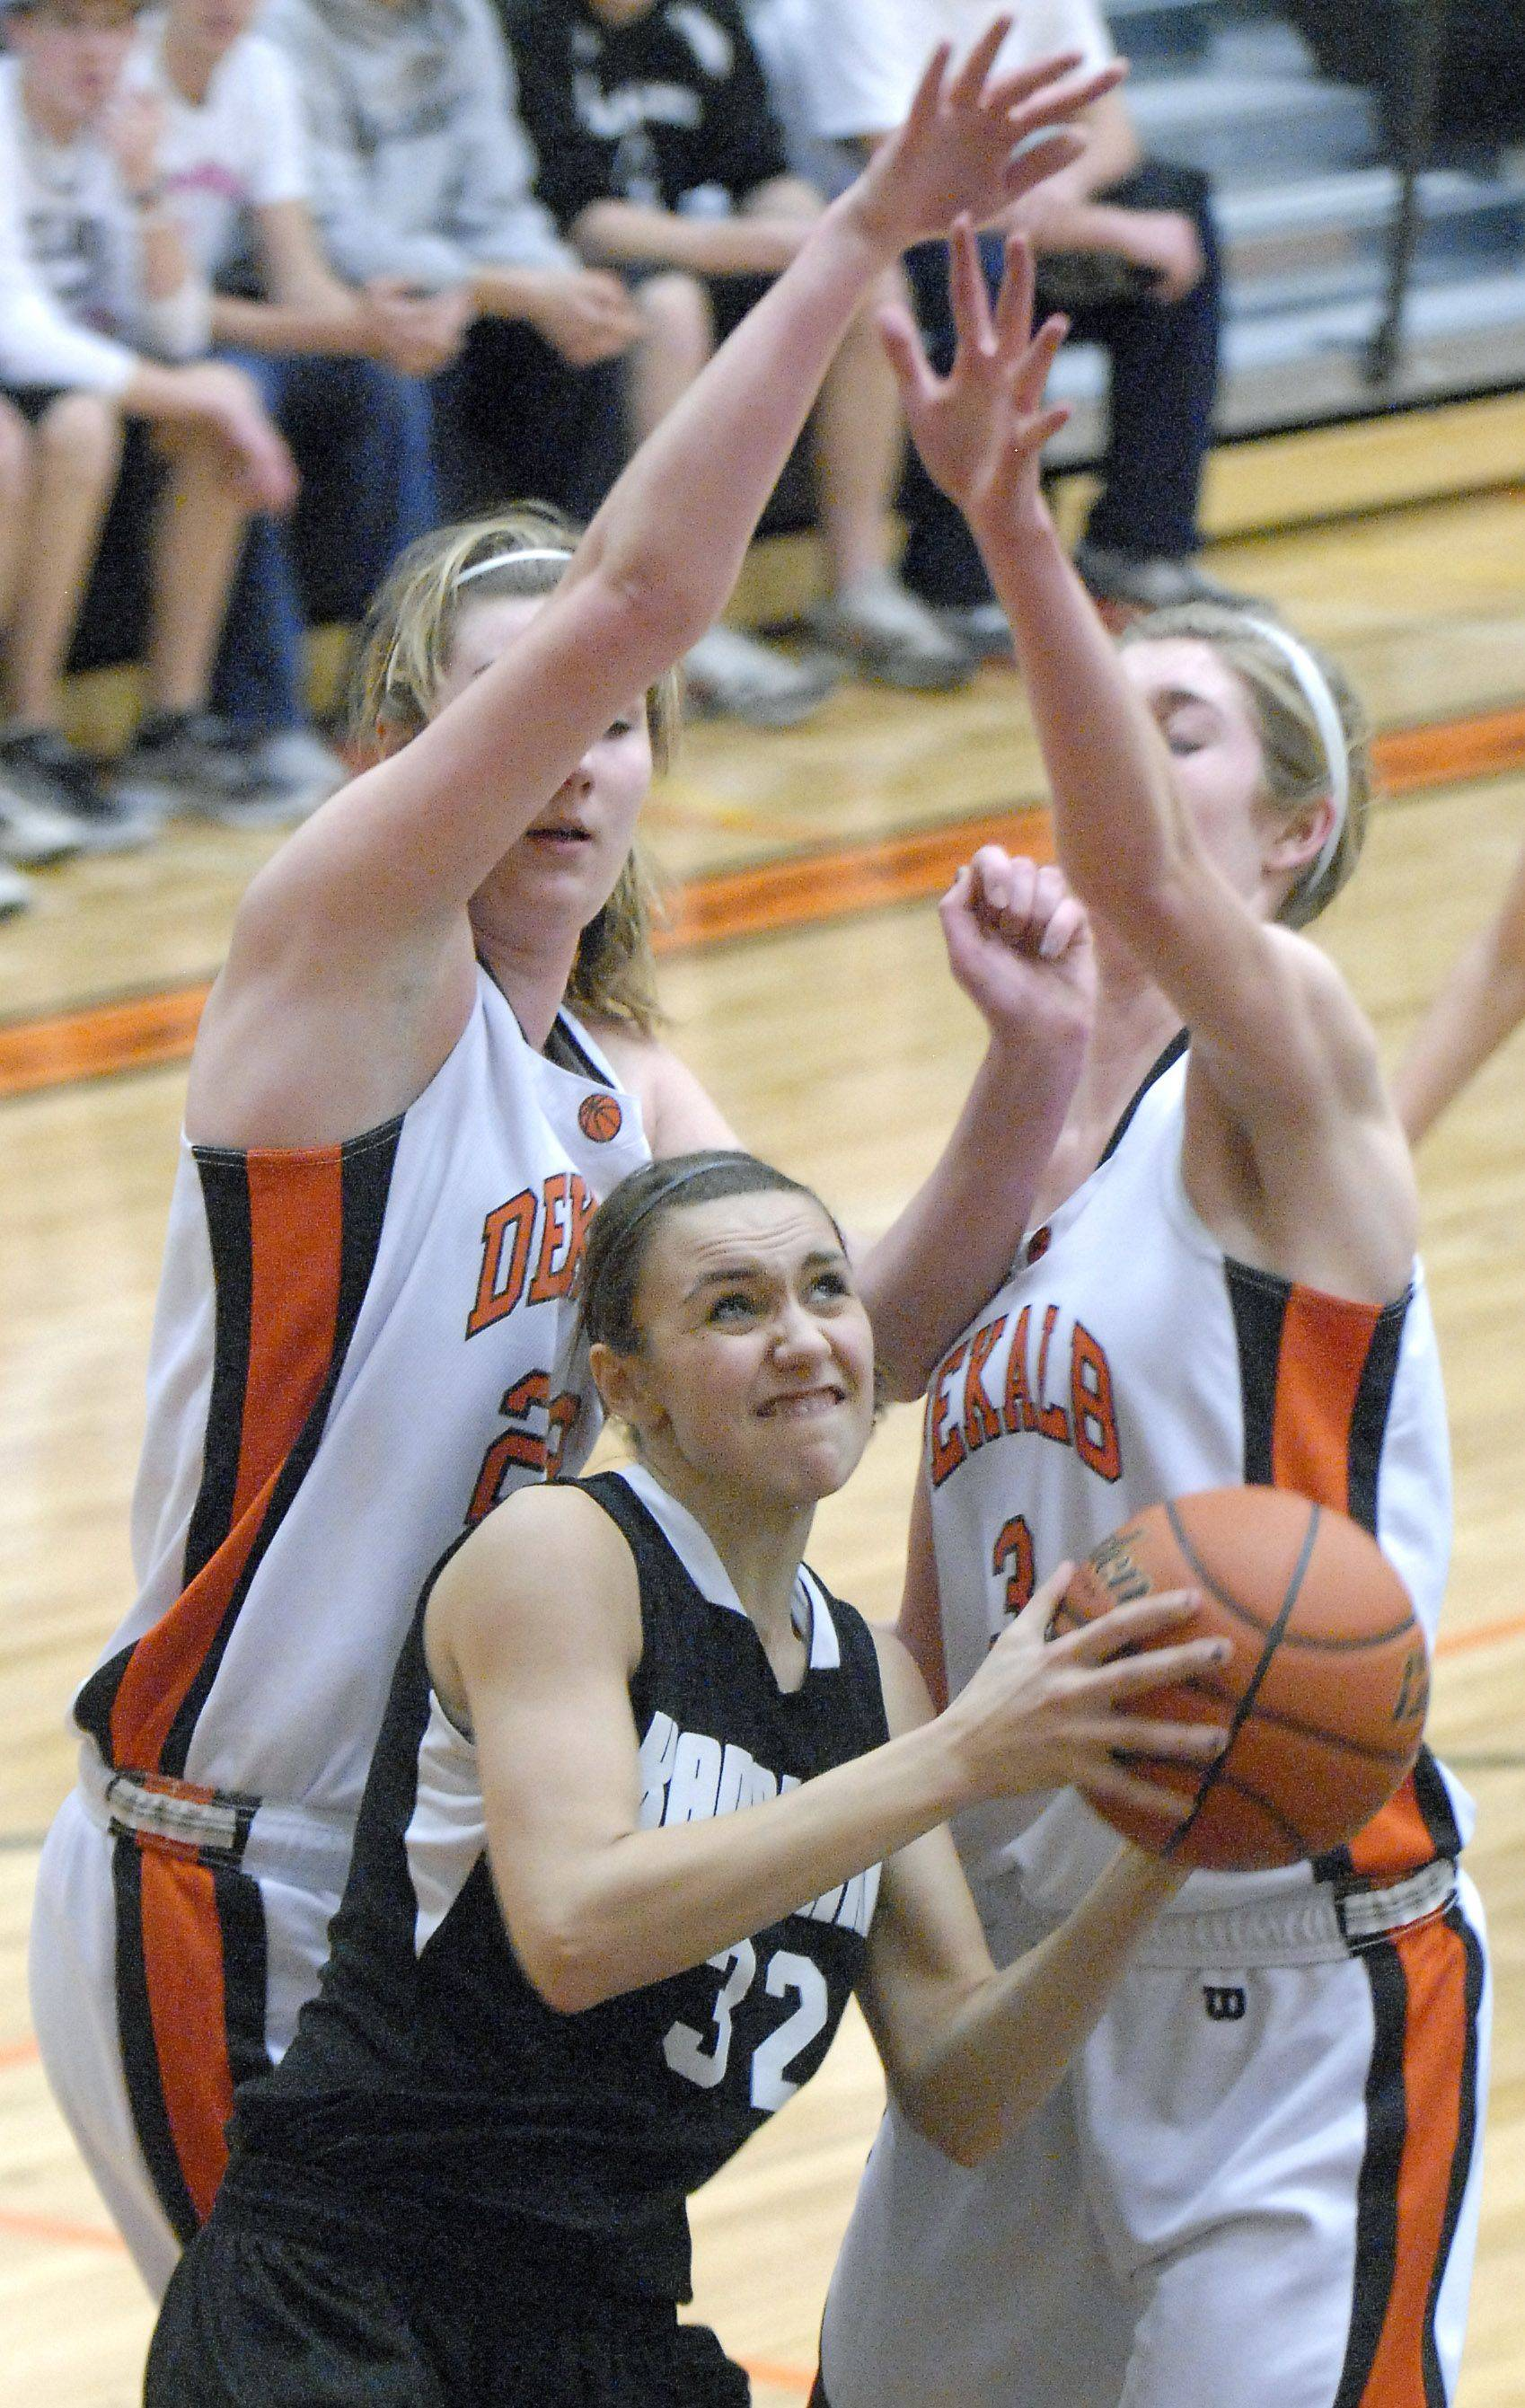 Kaneland's Emma Bradford shoots past a block by DeKalb's Emily Bemis and Courtney Bemis in the first quarter.